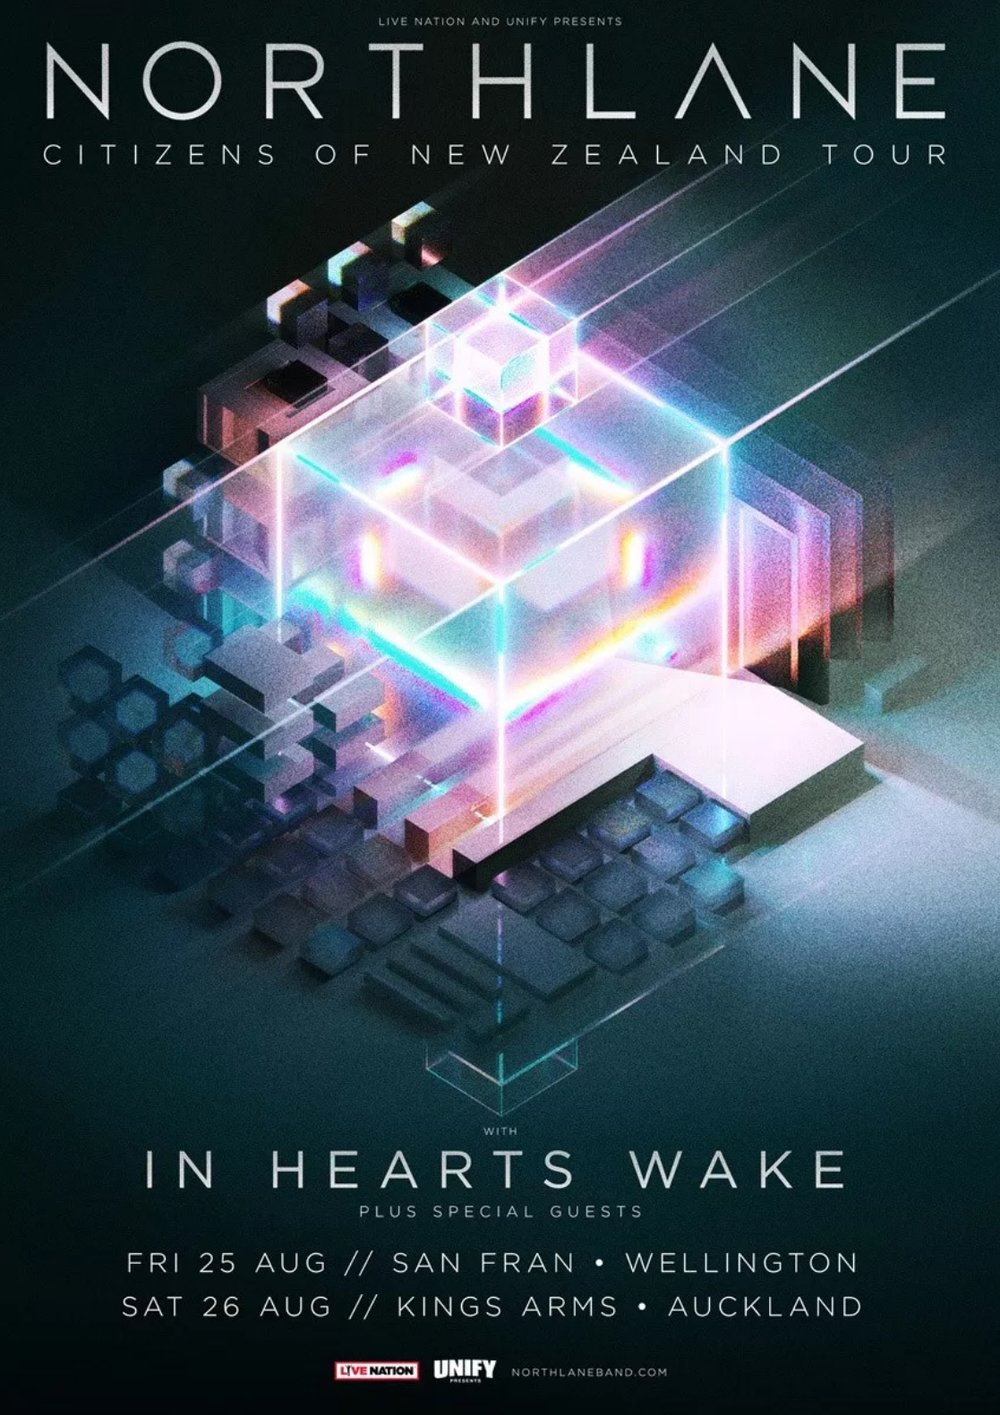 NORTHLANE - KINGS ARMS - Just weeks after the surprise release of their masterful fourth studio album Mesmer, Australian metalcore luminaries NORTHLANE announce their return to New Zealand this August for two dates with their label cohorts IN HEARTS WAKE.